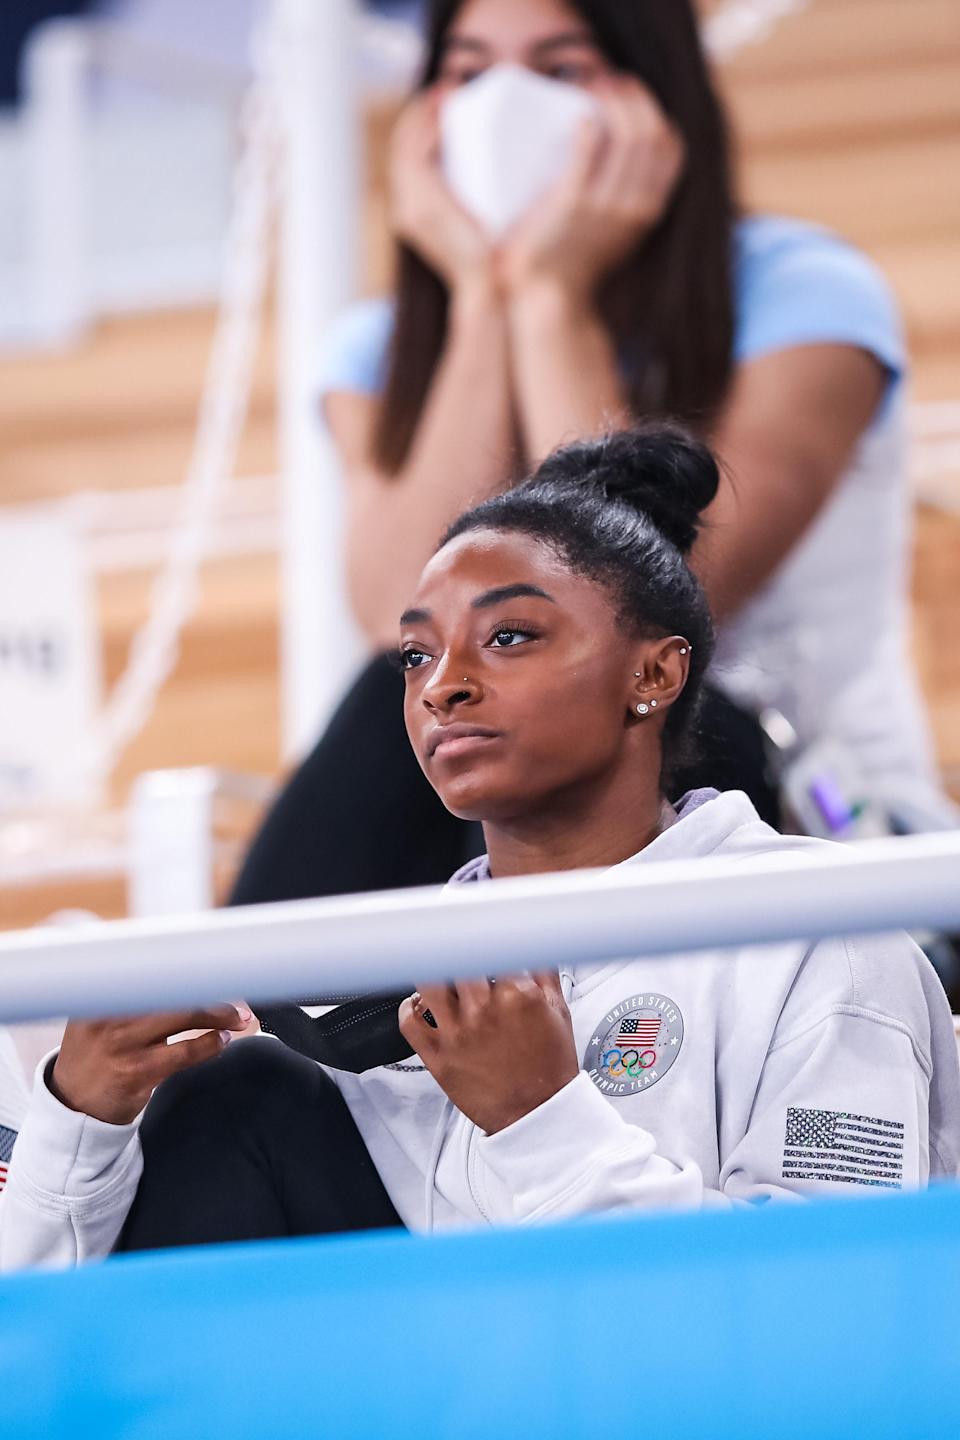 Simone Biles in the stands at the Olympics